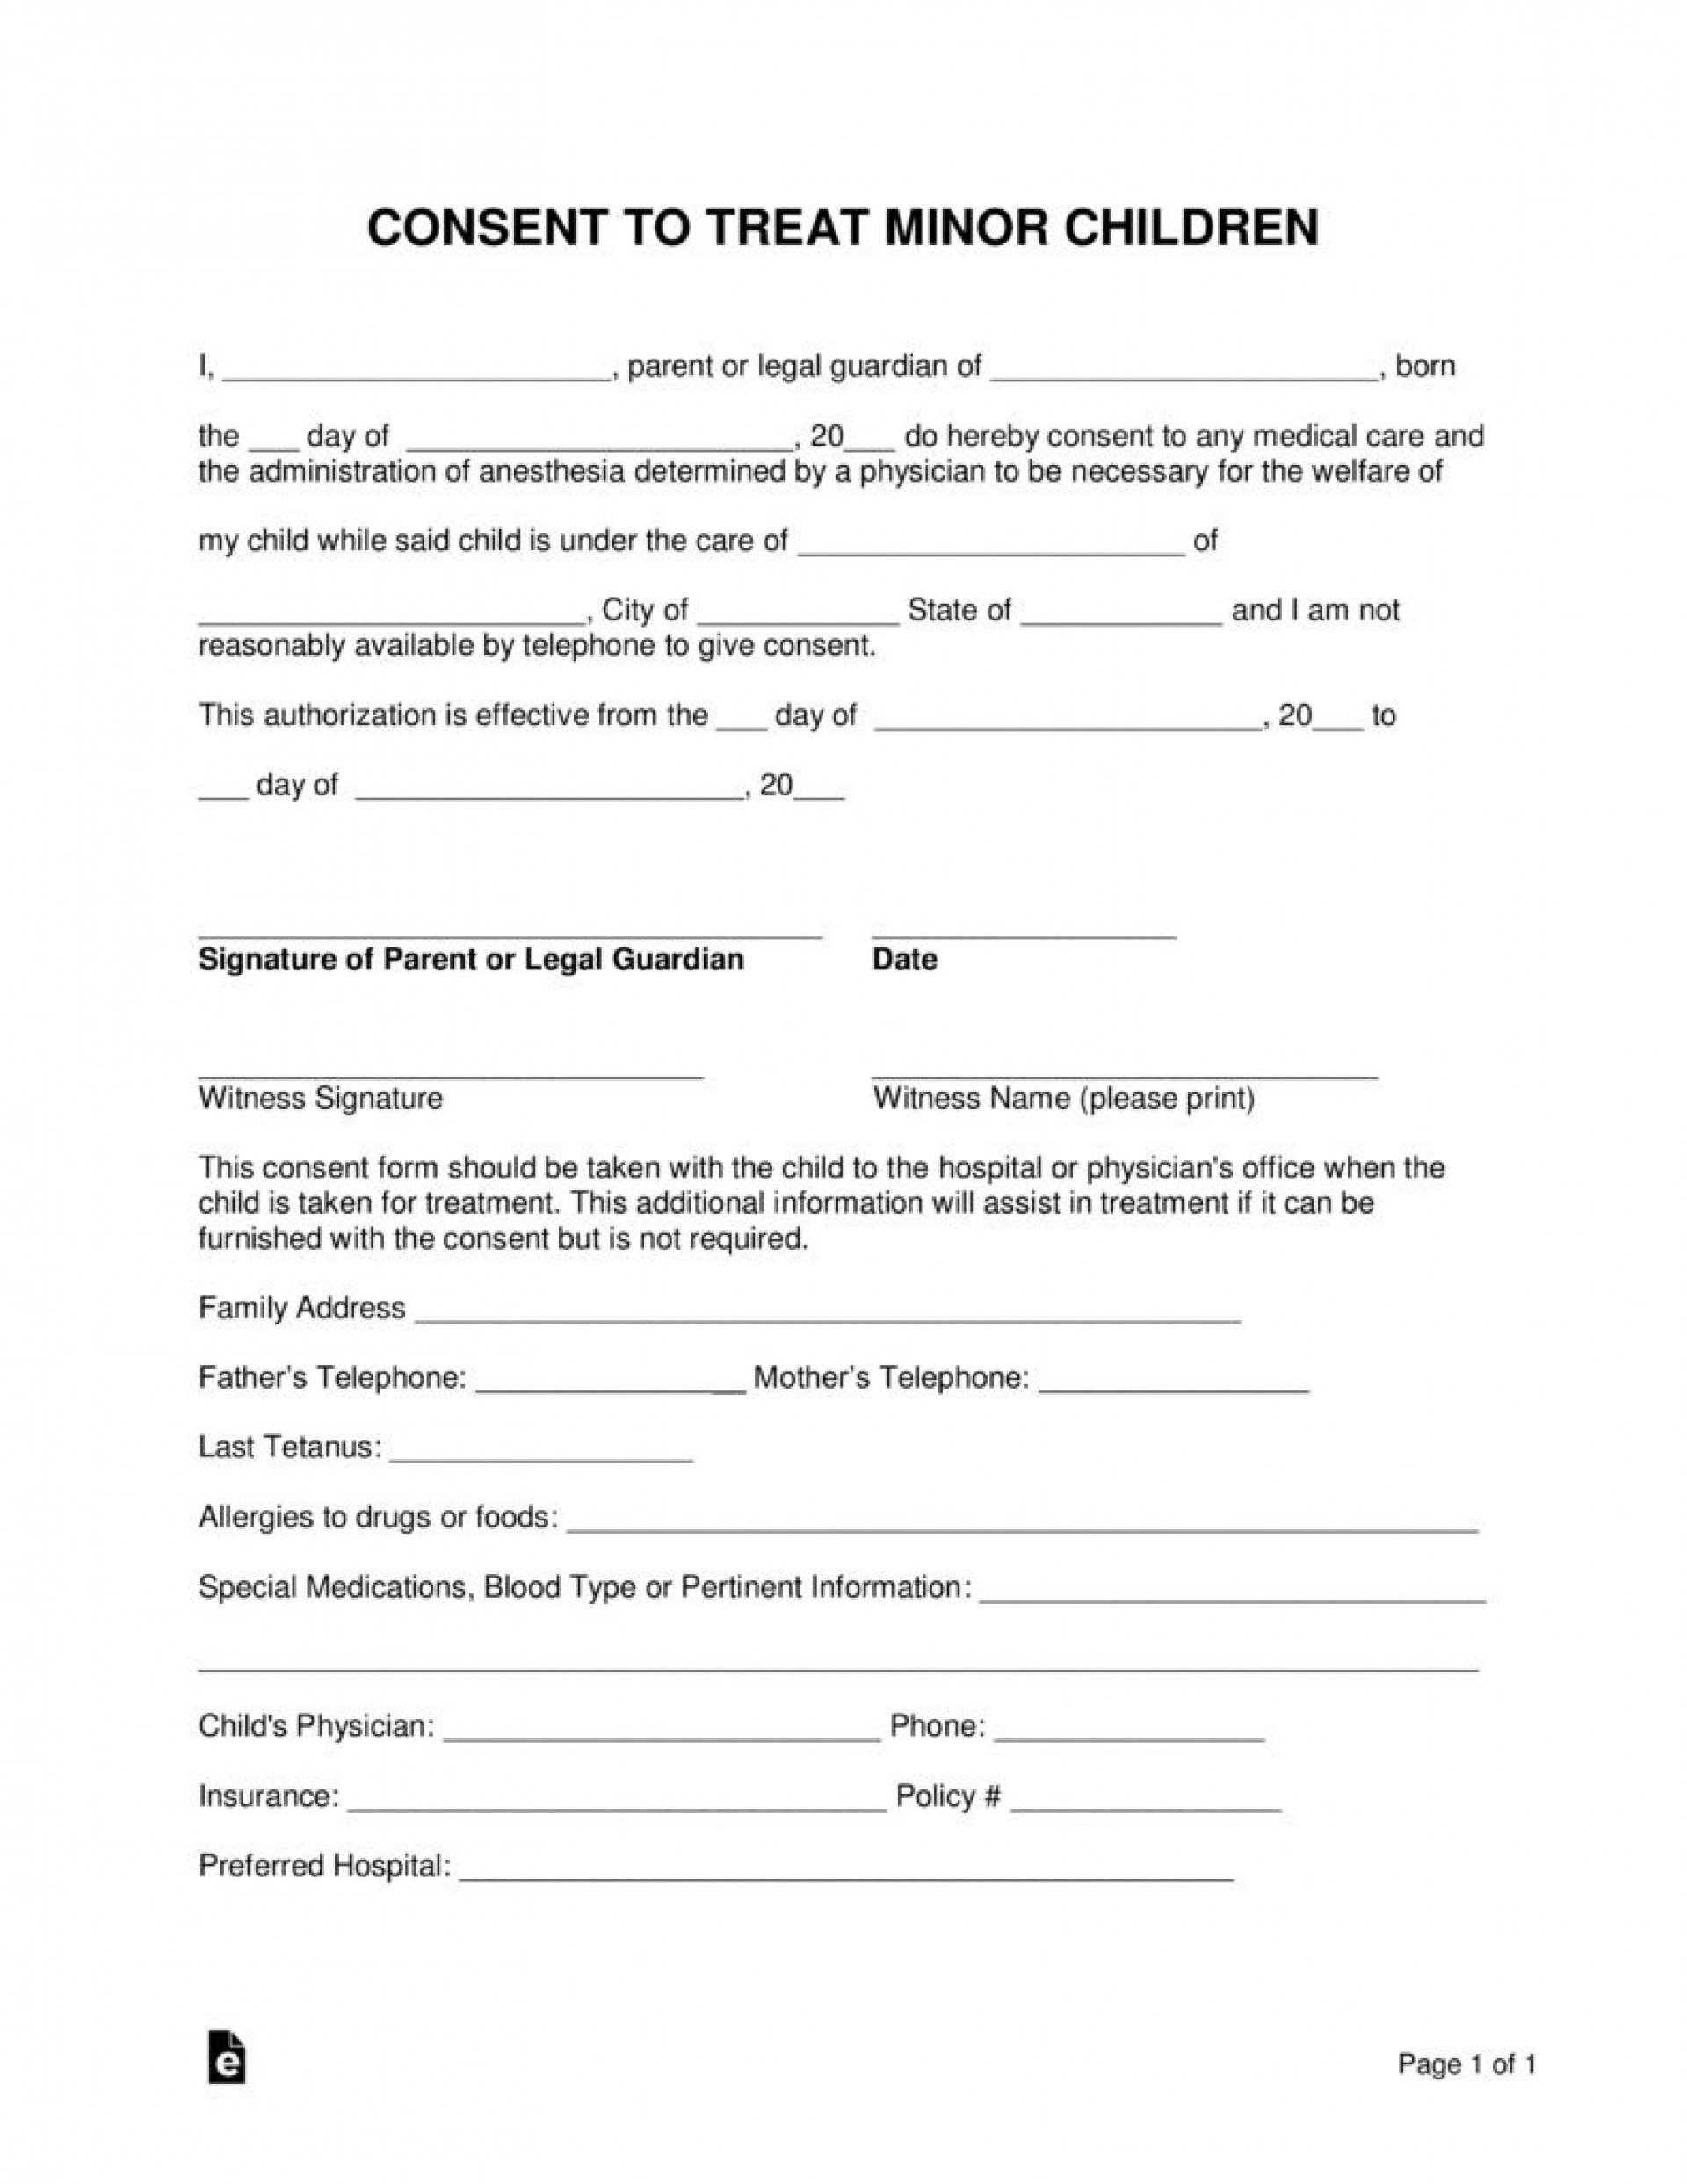 000 Wonderful Medical Release Form Template High Definition  Free Consent Uk For Minor1920